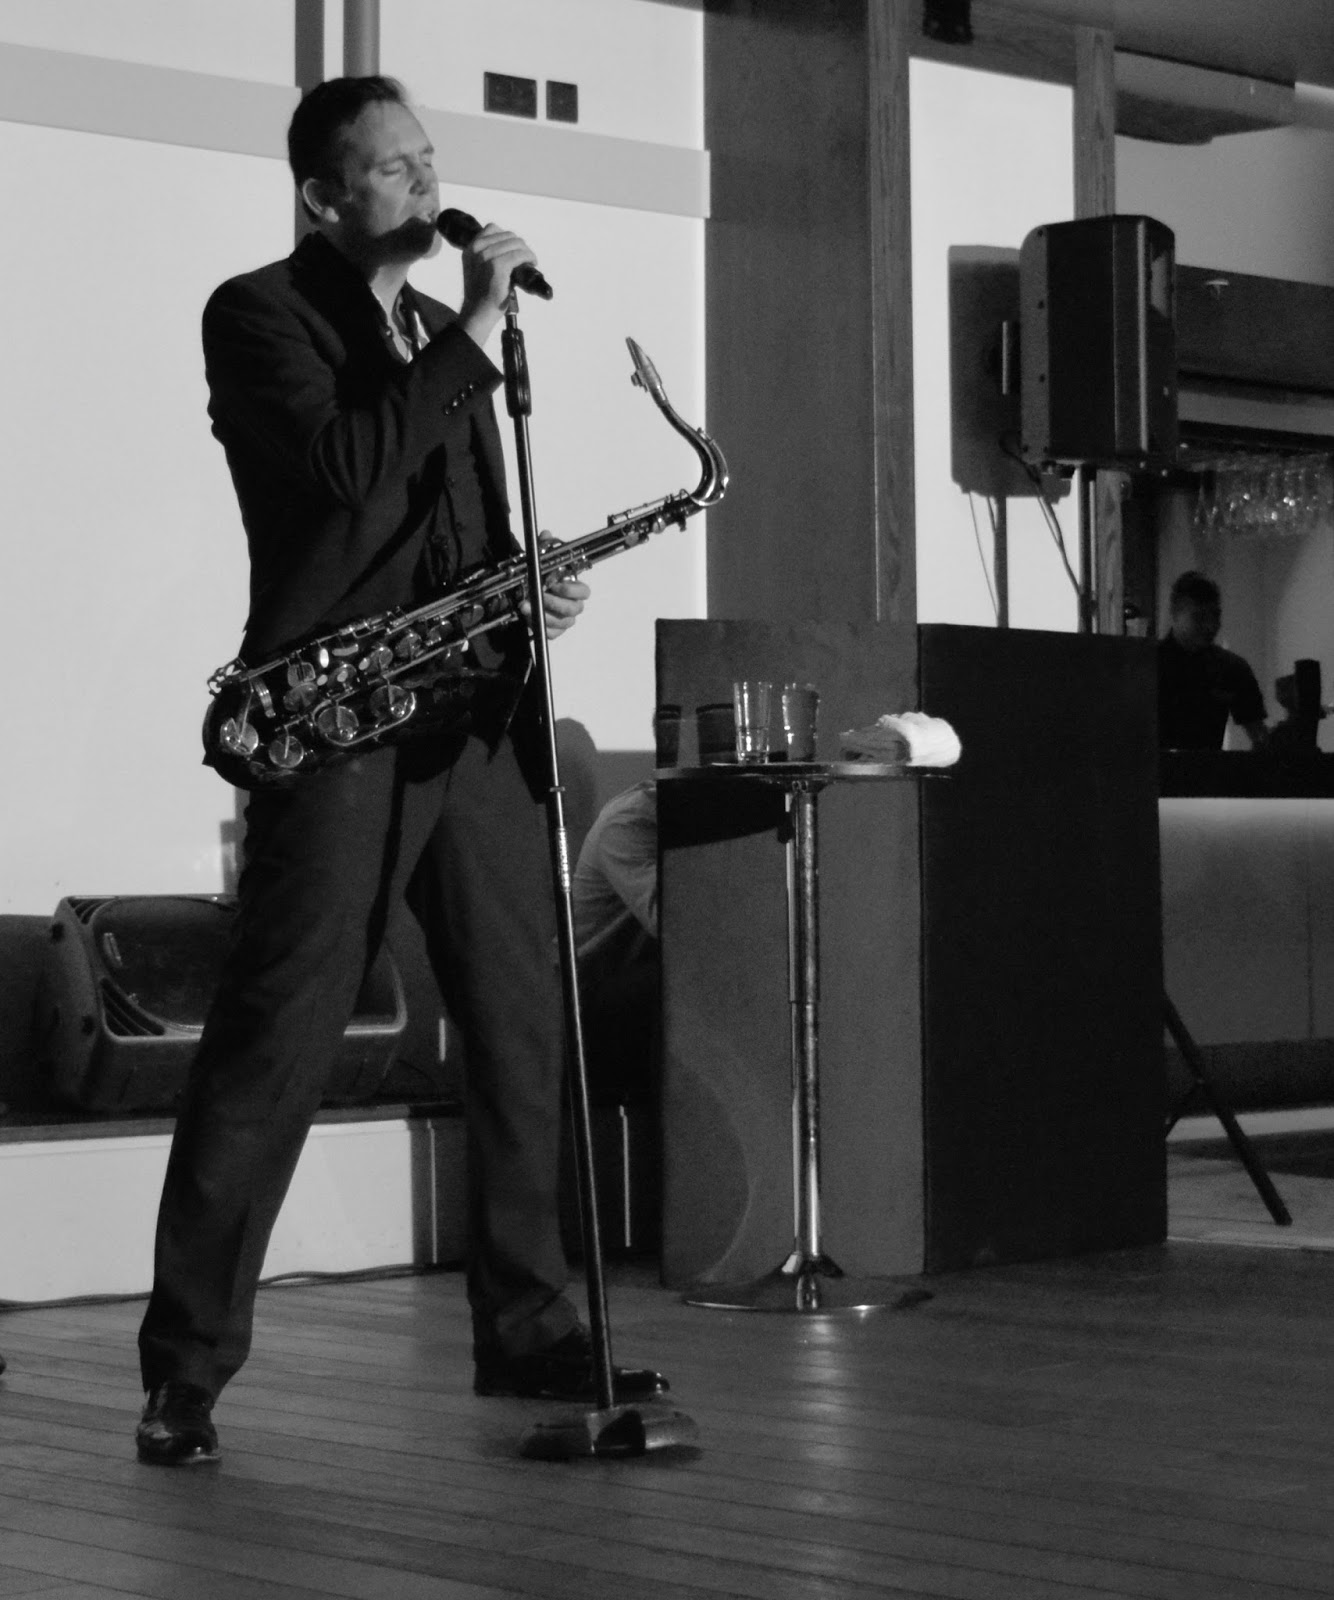 A grown-up date night at Doubletree by Hilton Newcastle Airport with a night of swing and sax with Jason Isaacs in the function room.